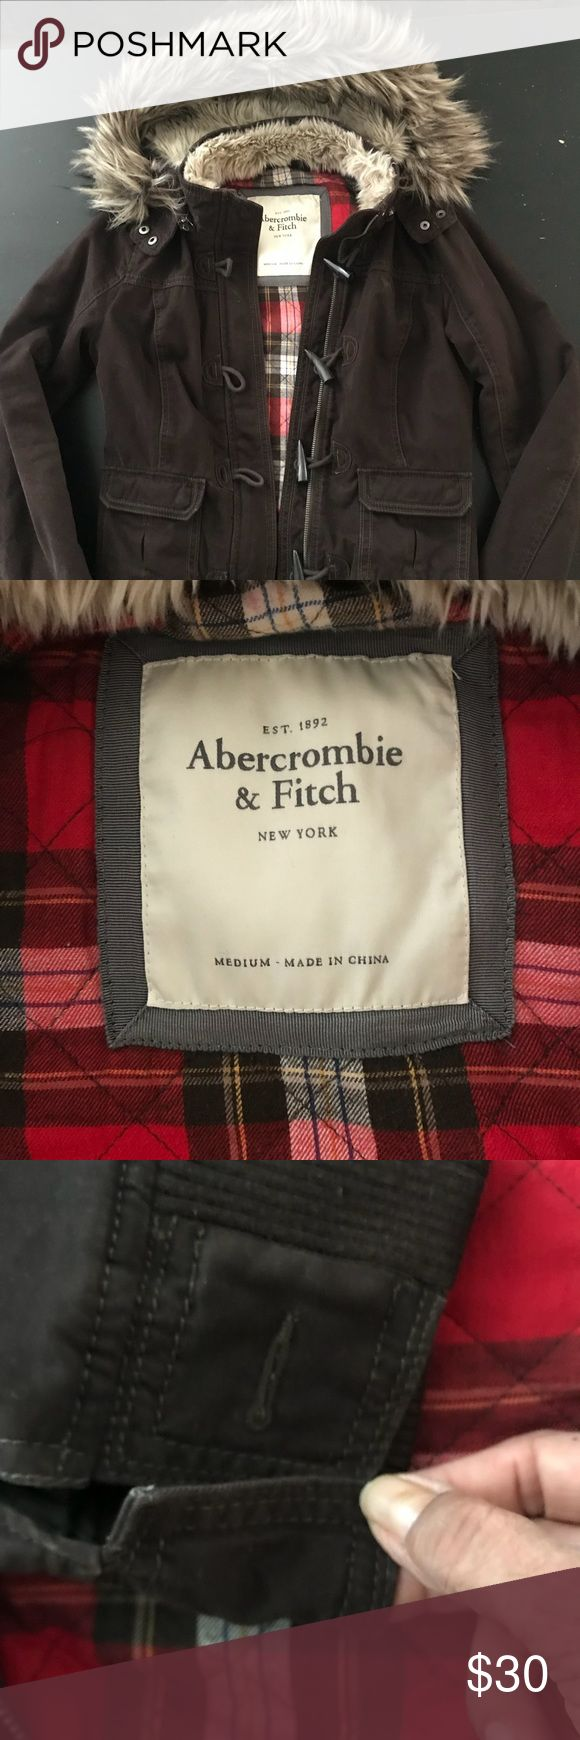 Abercrombie and Fitch Hooded Jacket Great for cold weather but not super thick. Beautiful fur hood looks great on! Missing one button on the wrist, see photo. Abercrombie & Fitch Jackets & Coats